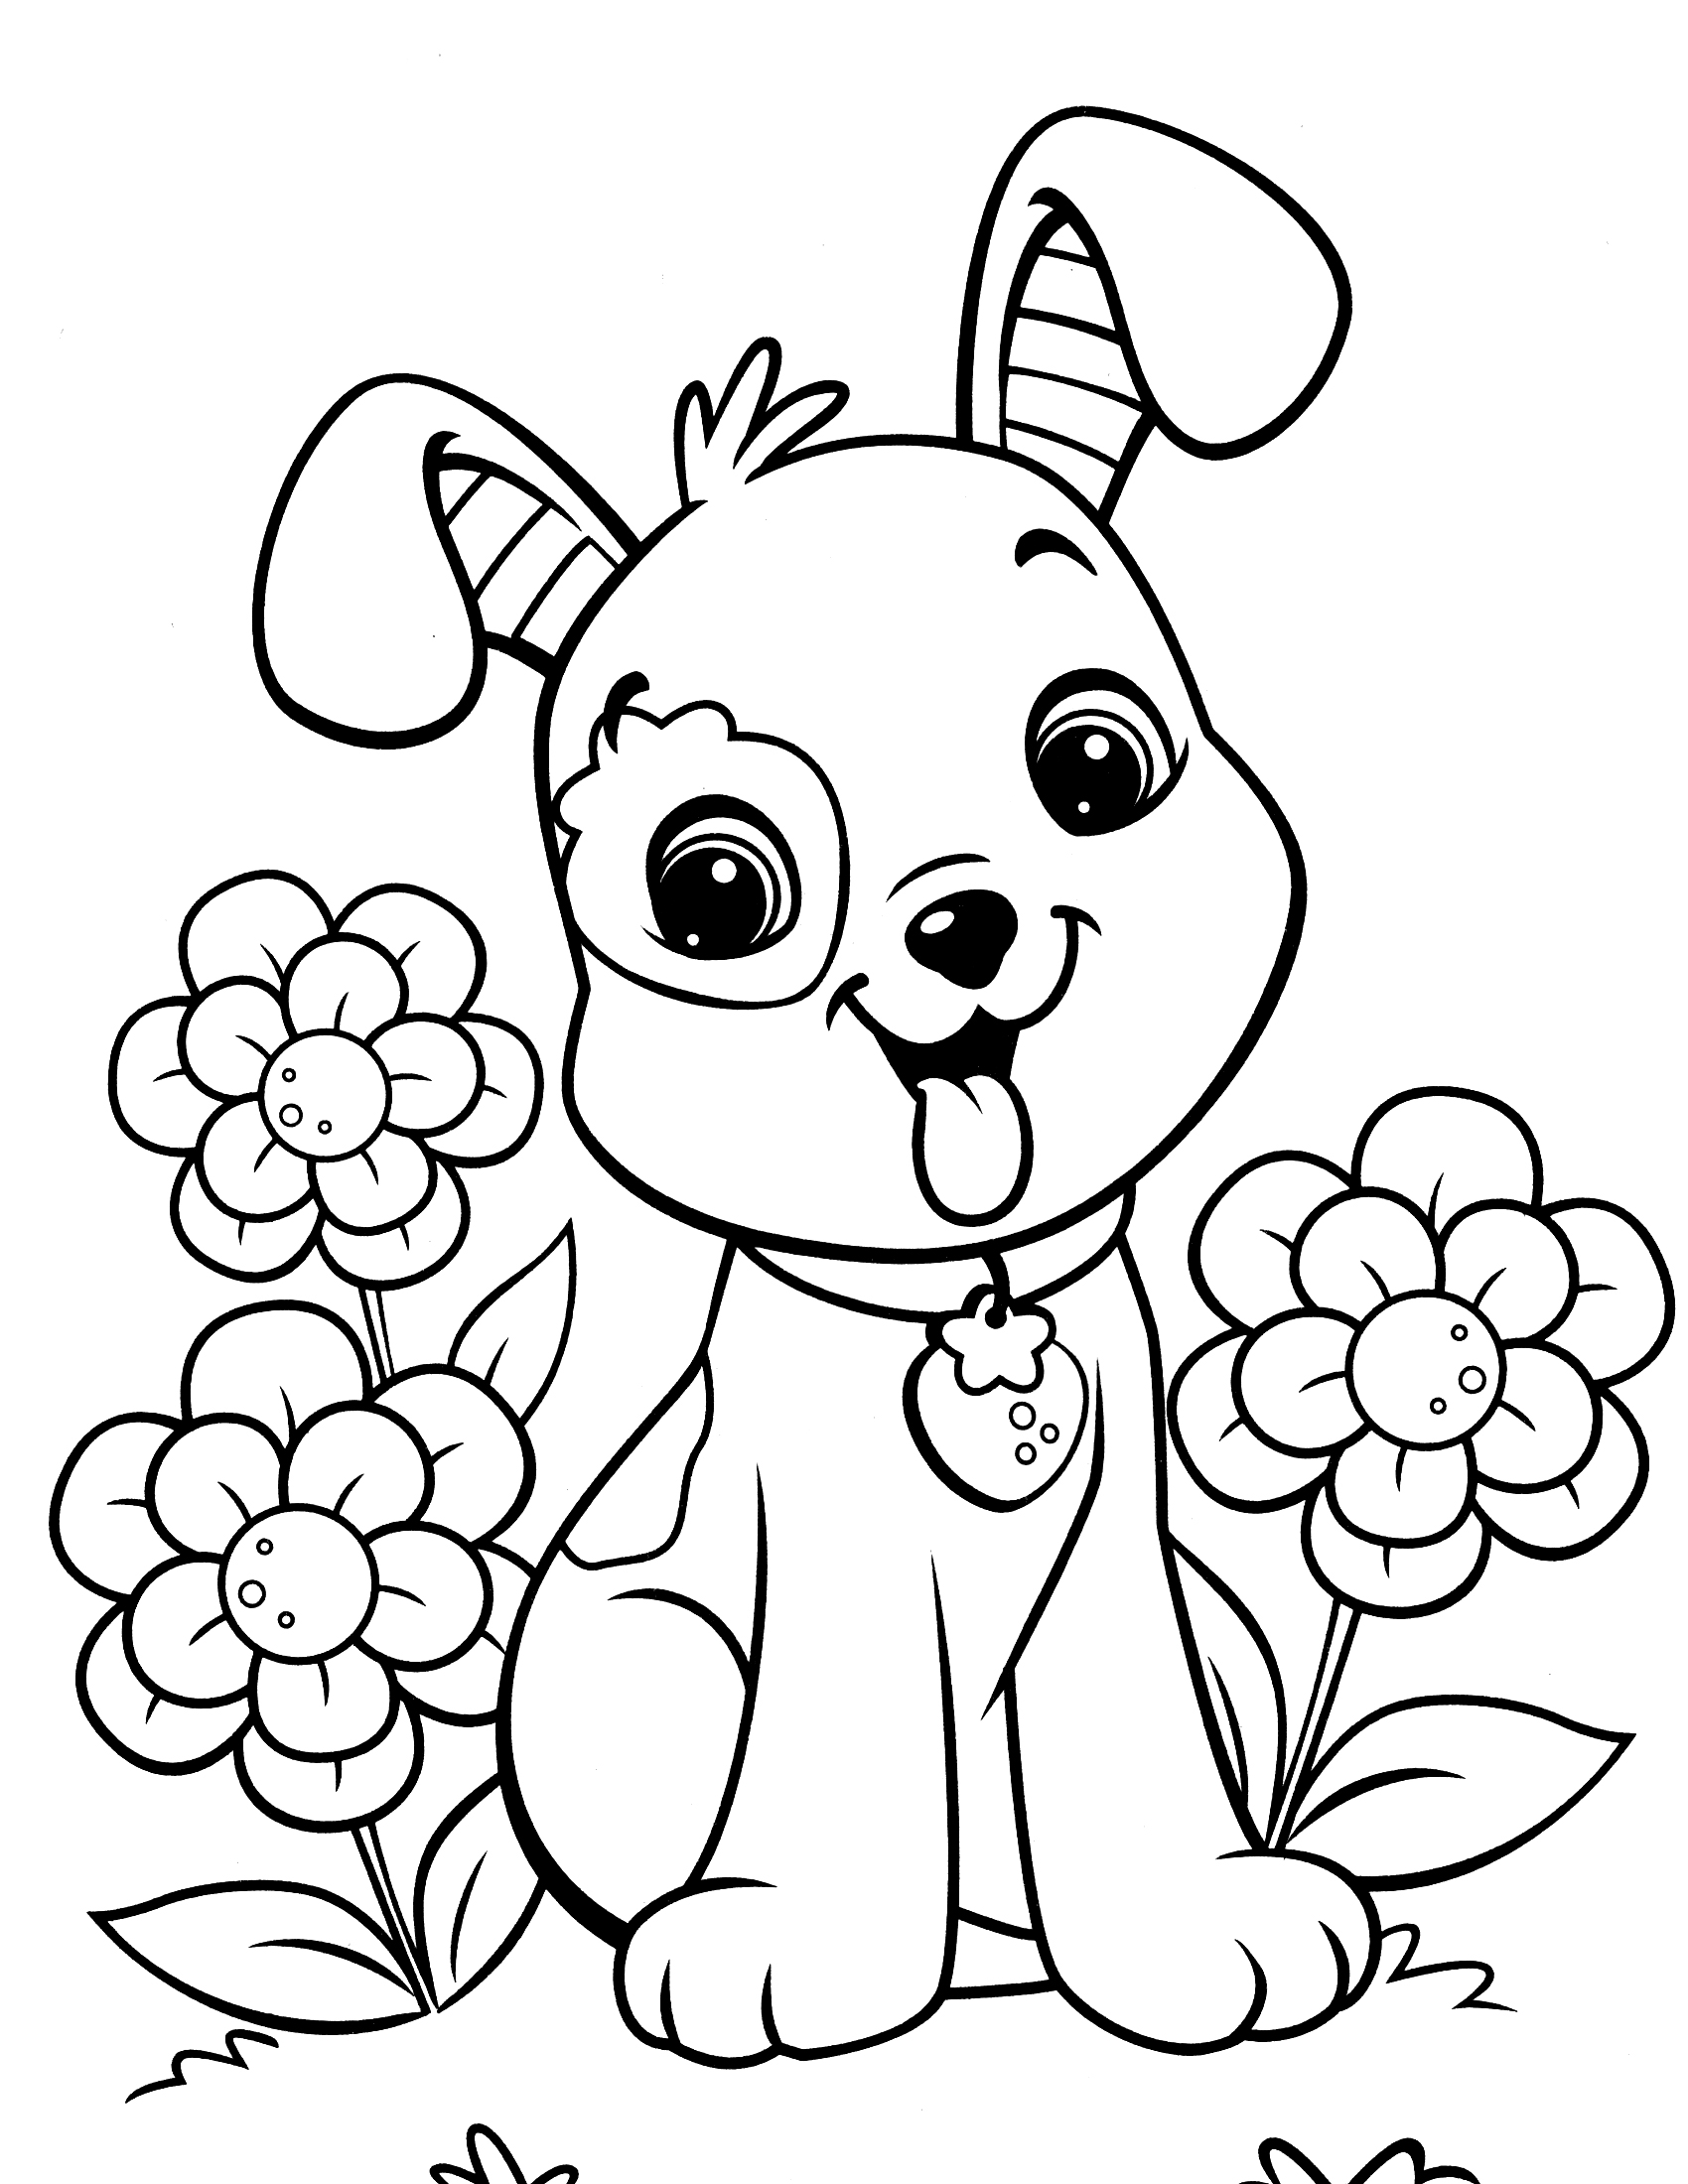 Coloring pages of dogs printable